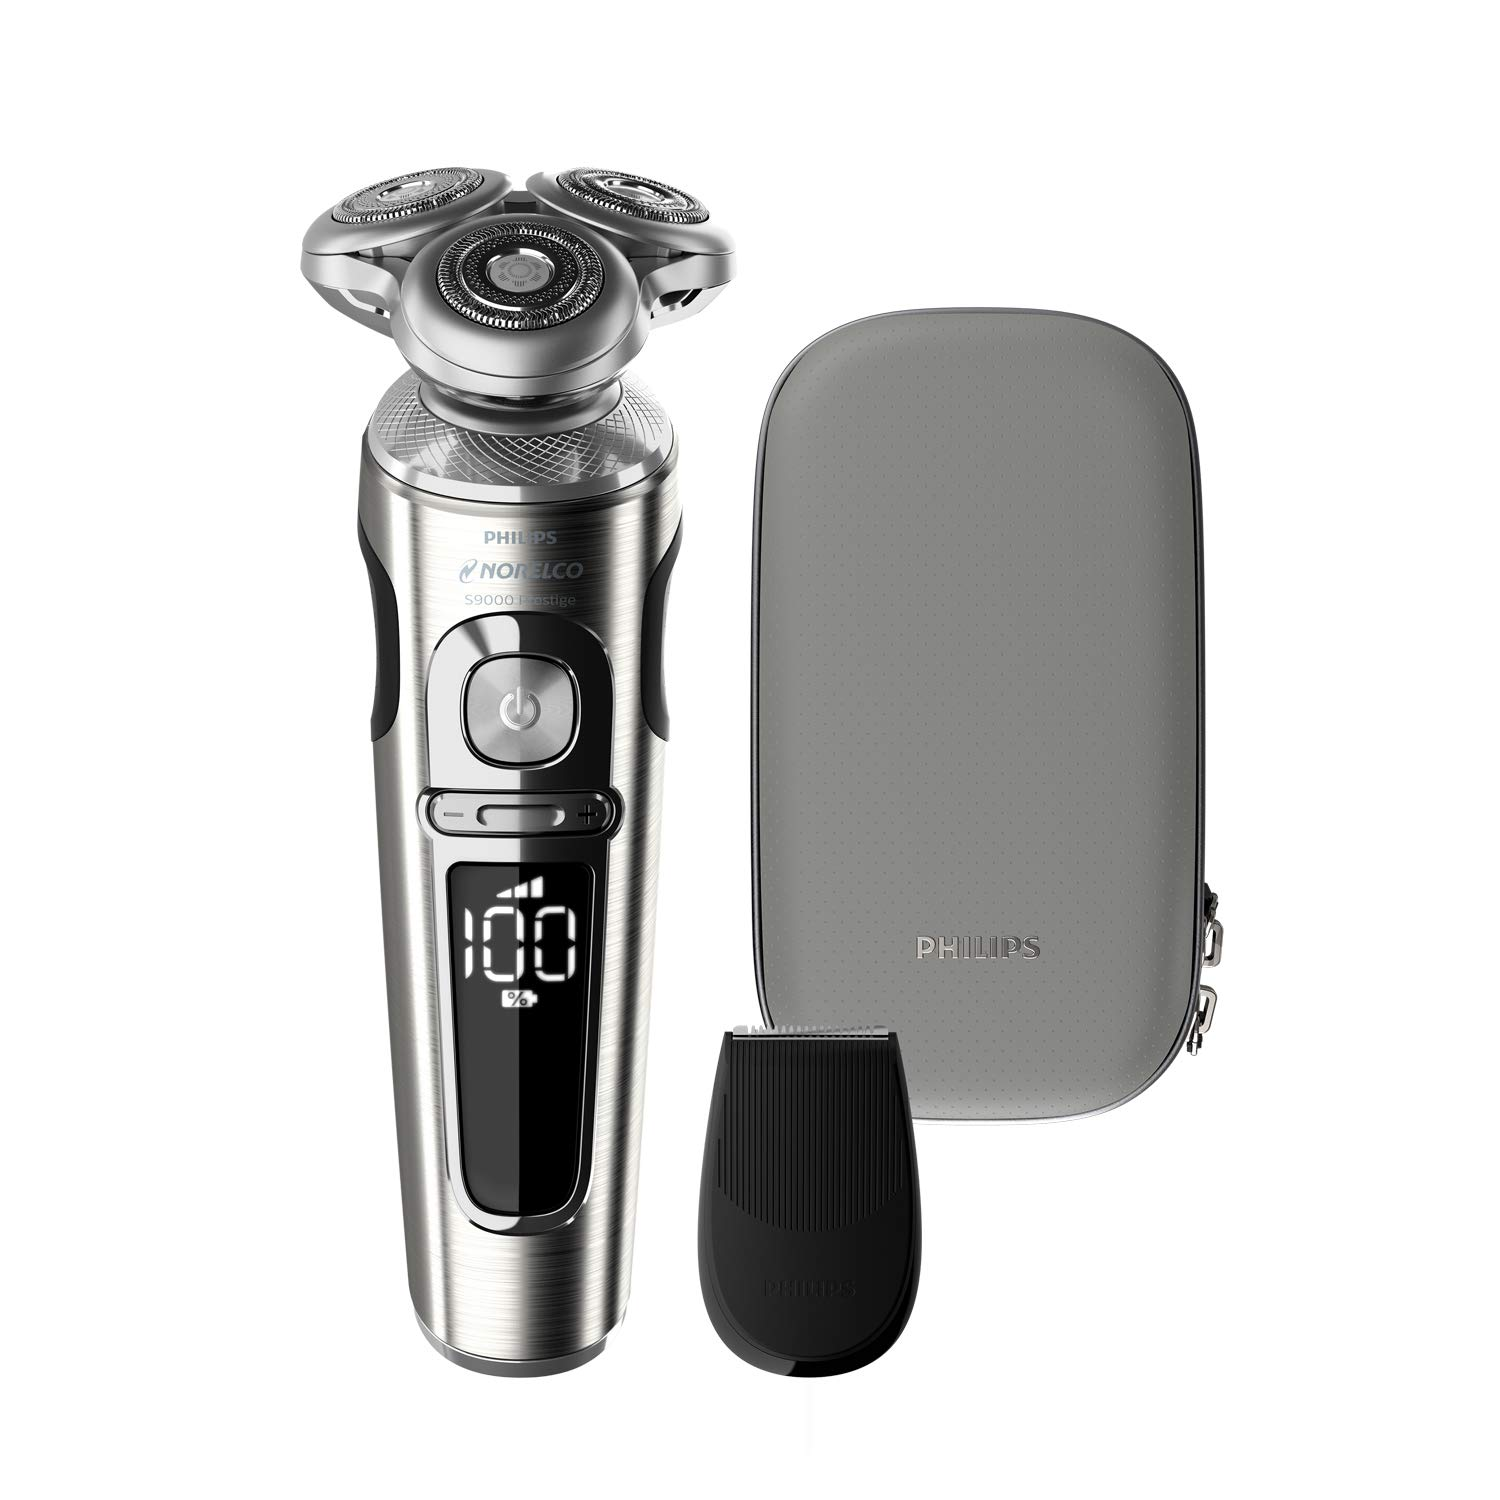 Philips Norelco SP9820/87 Shaver